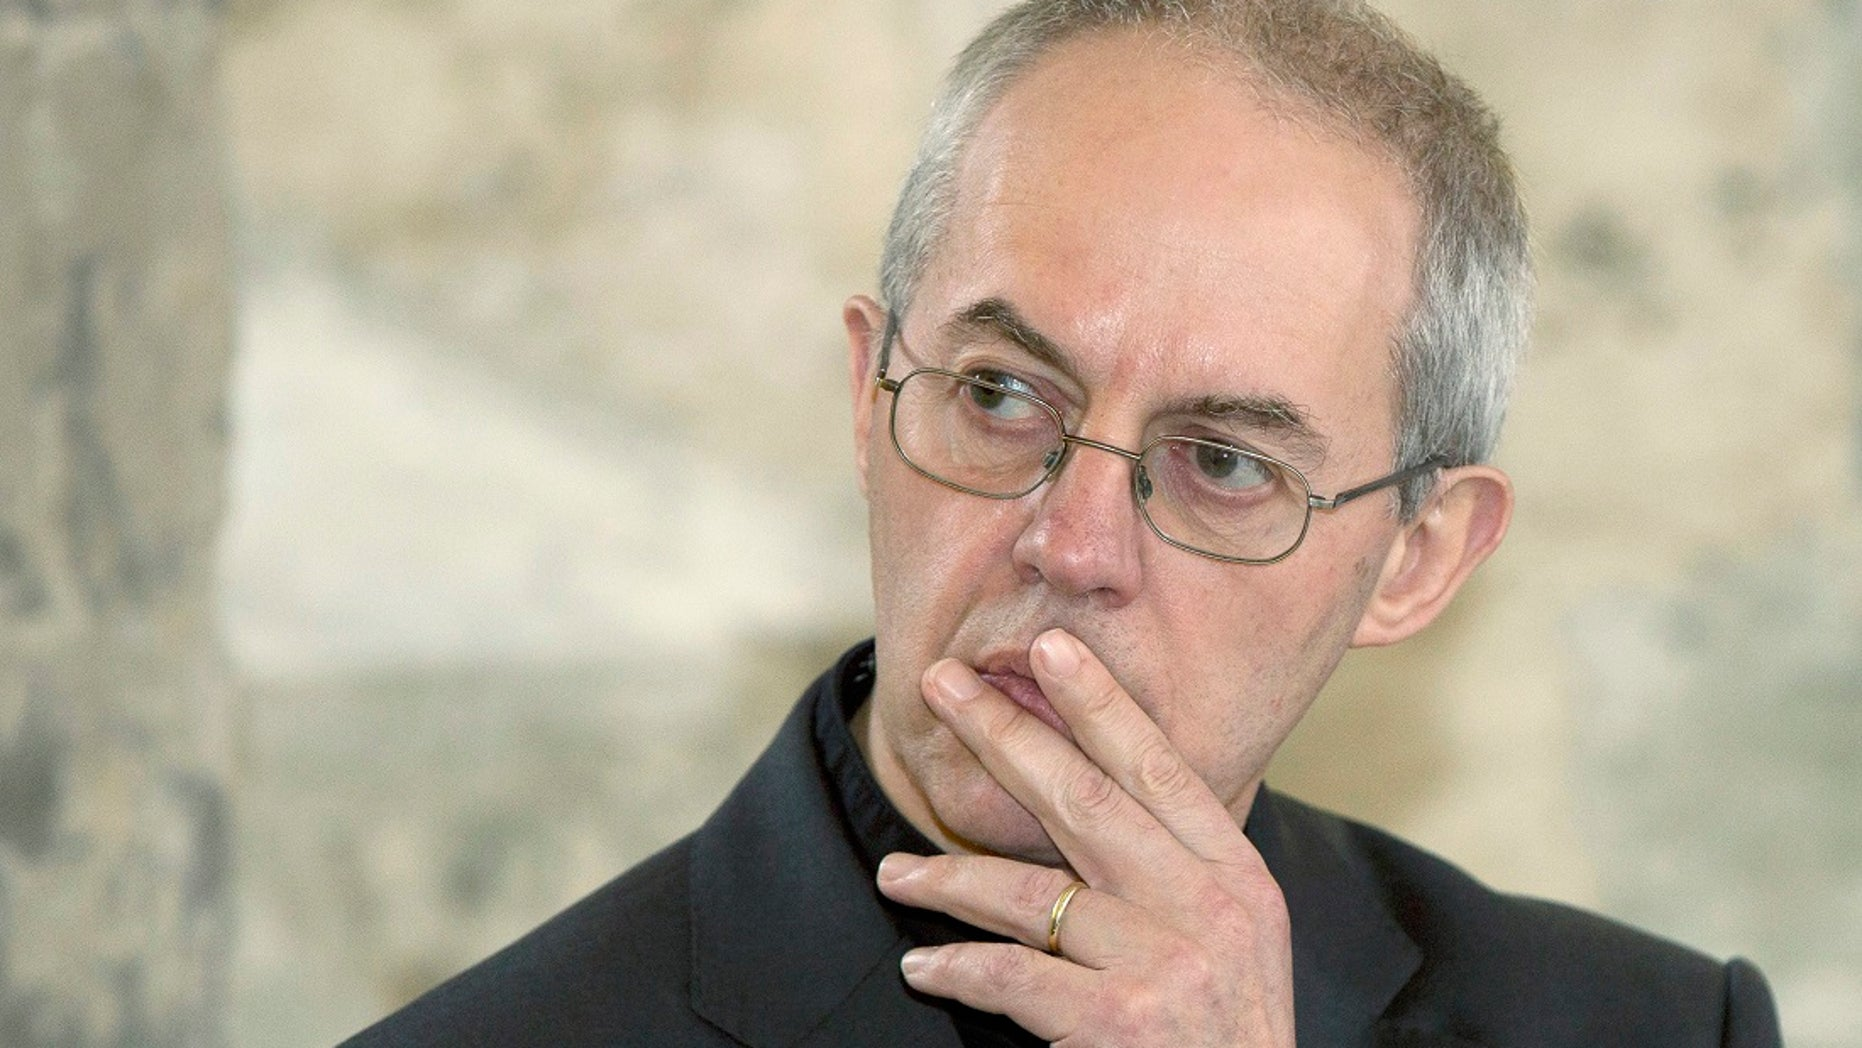 The Archbishop of Canterbury Justin Welby speaks during a news conference at Lambeth Palace in London February 20, 2014.   REUTERS/Neil Hall  - RTX2FQLQ